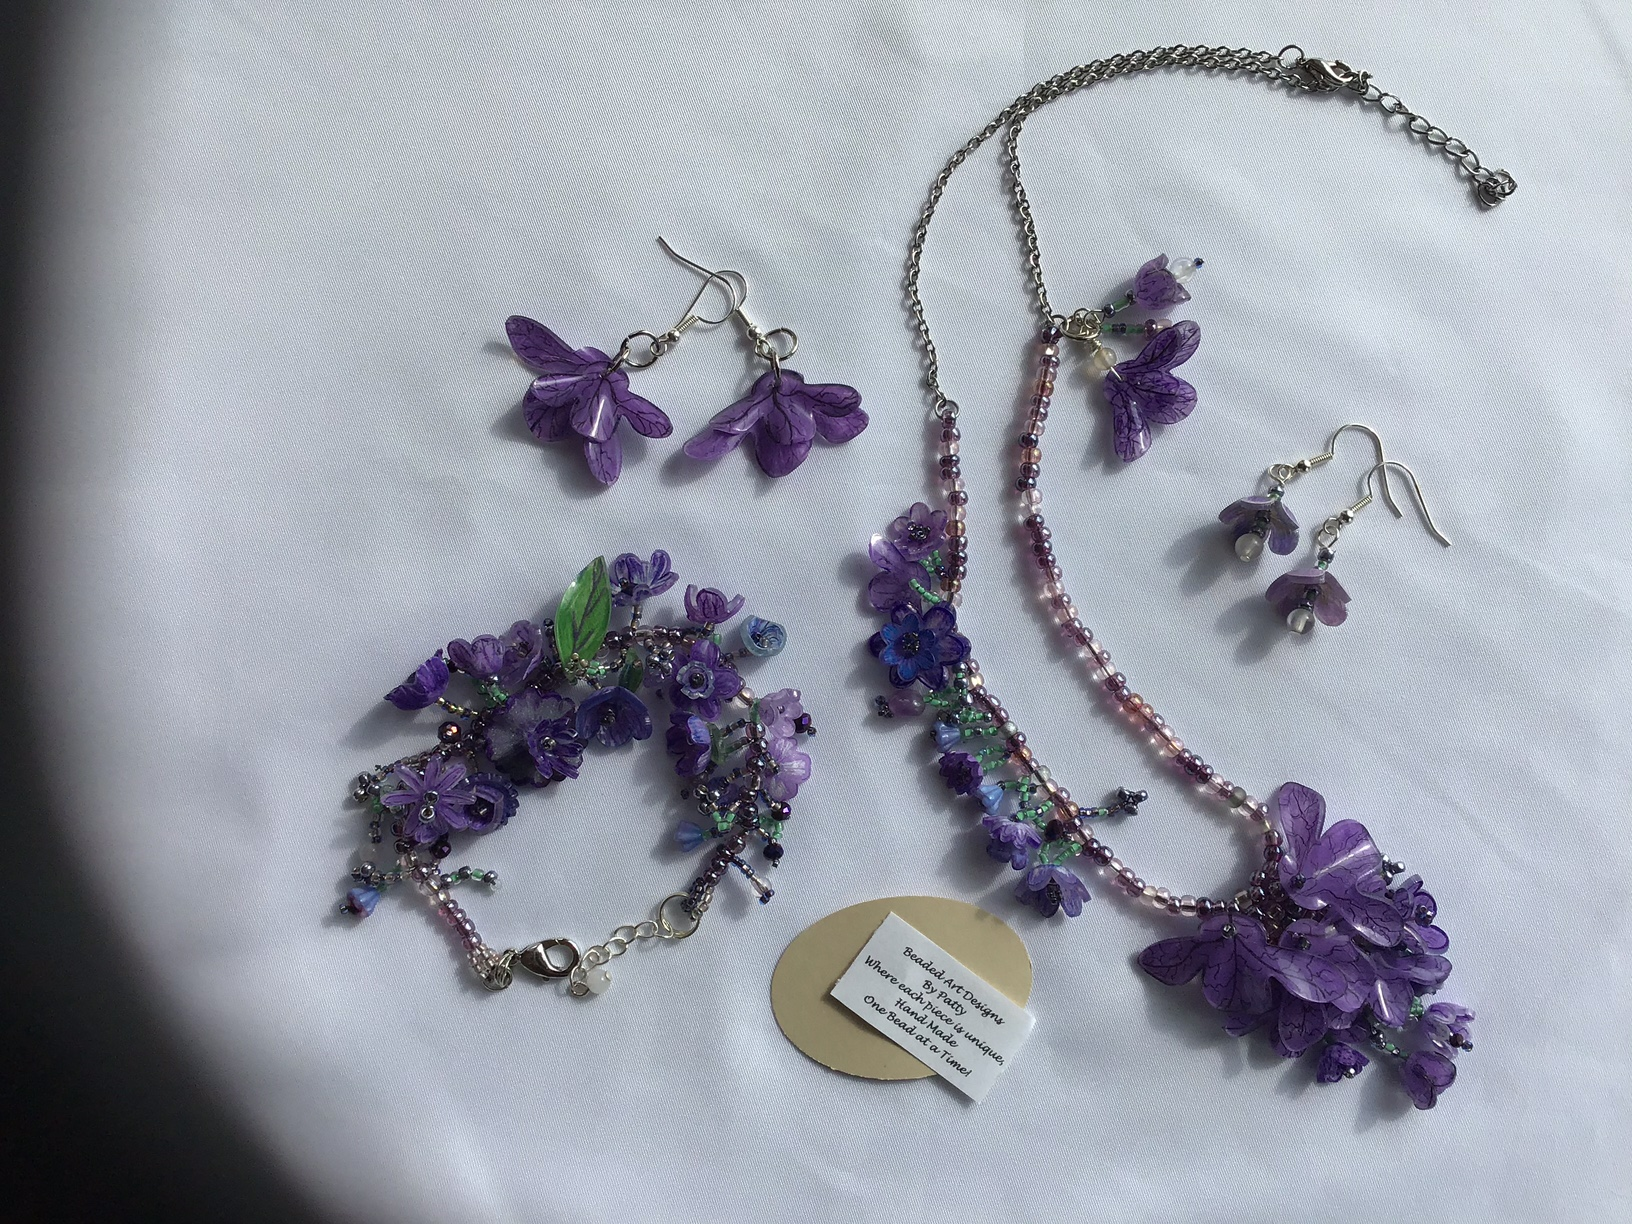 Walk in the Garden Line hand made beads, gemstones and seed beads